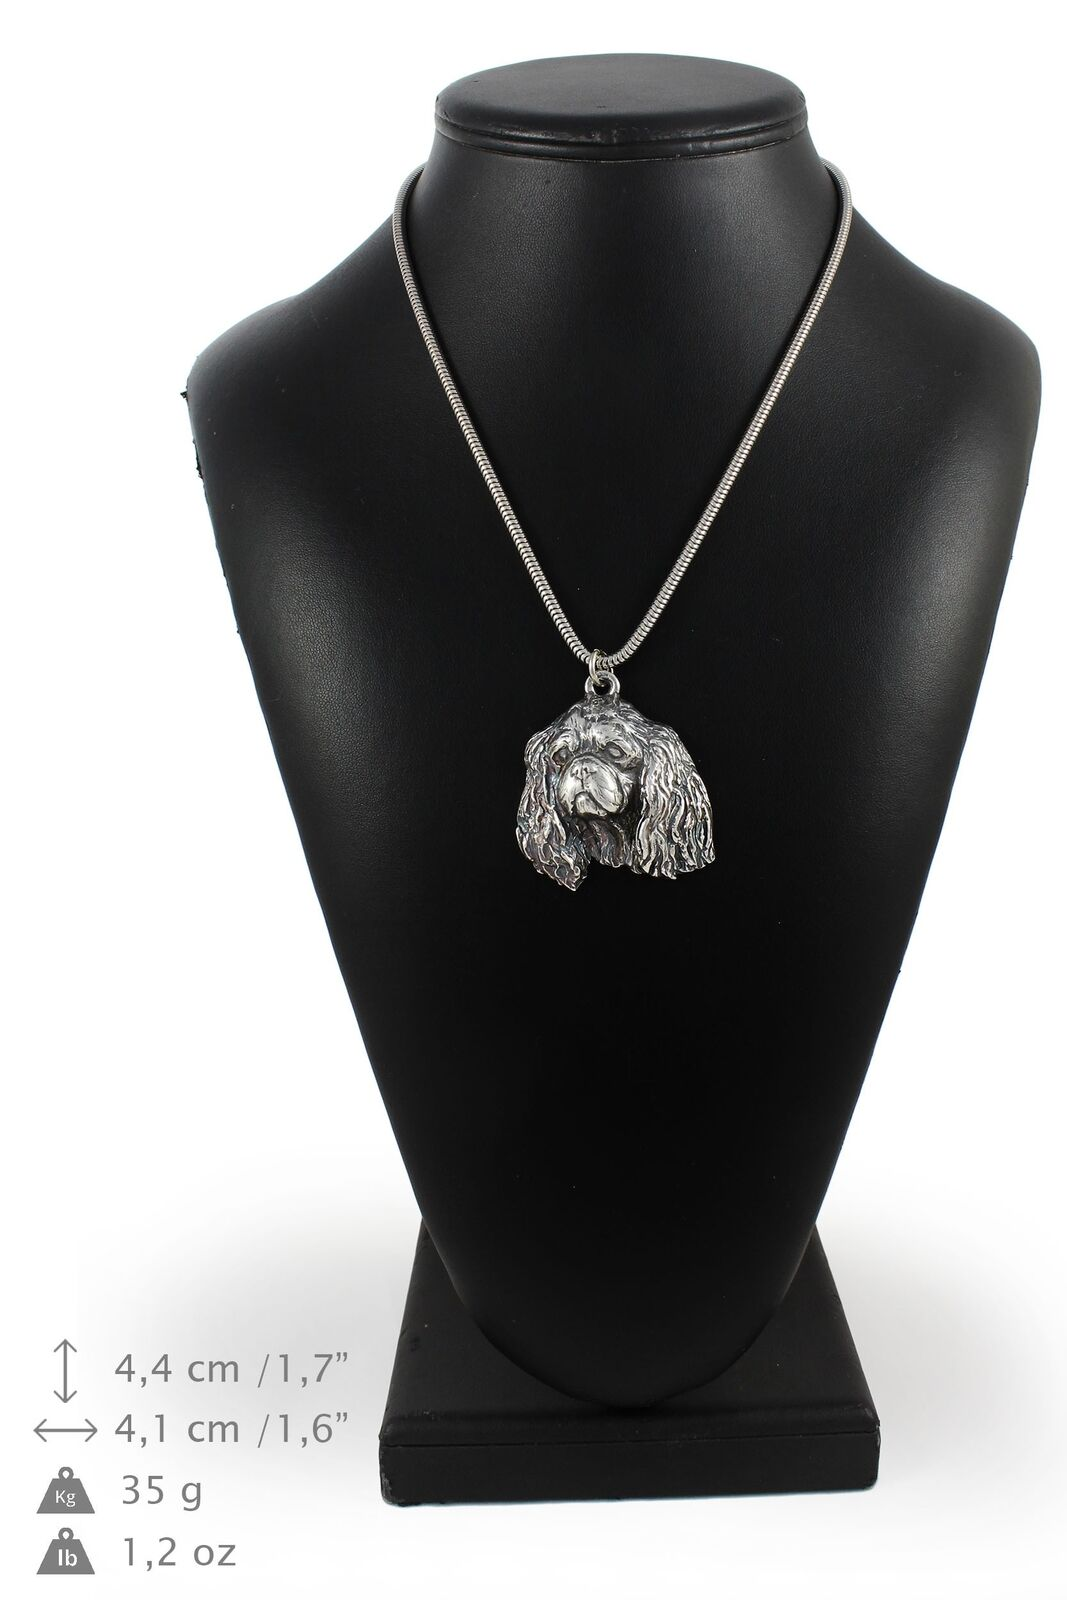 King Charles Spaniel - Silber coverot necklace with Silber chain, Art Dog